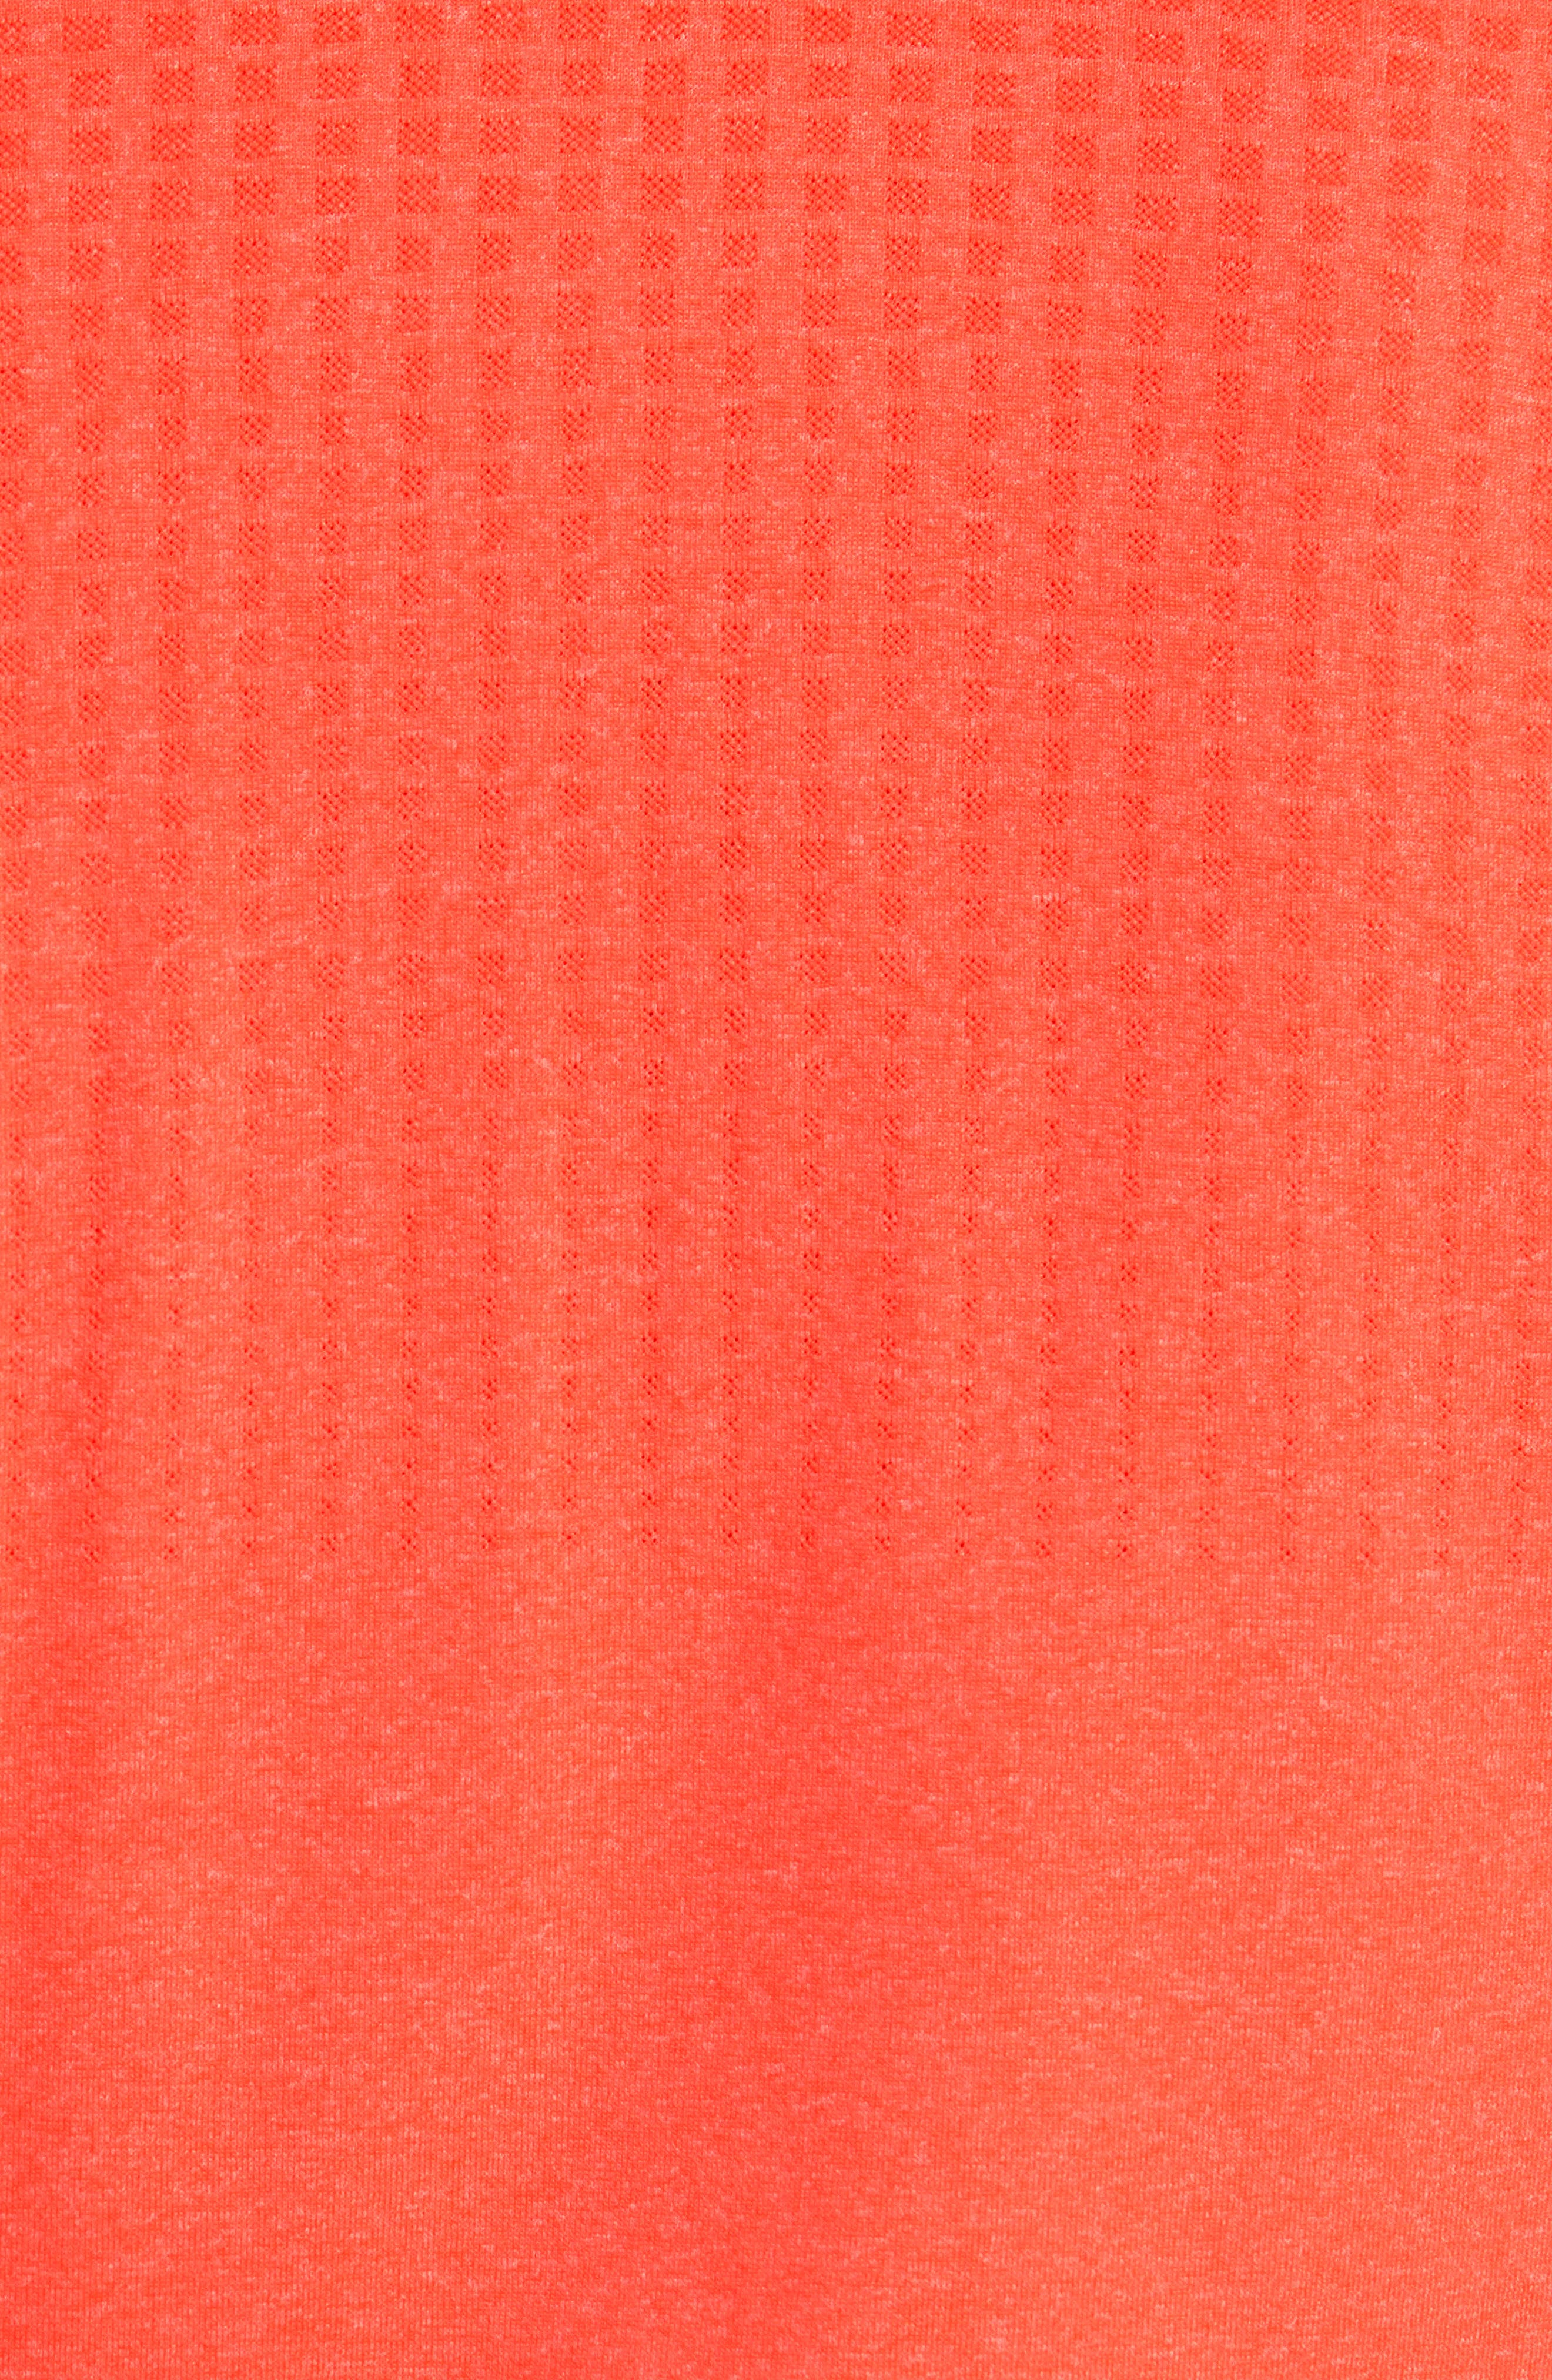 UNDER ARMOUR, Threadborne Outer Glow Regular Fit Polo Shirt, Alternate thumbnail 5, color, NEON CORAL LIGHT/ HEATHER